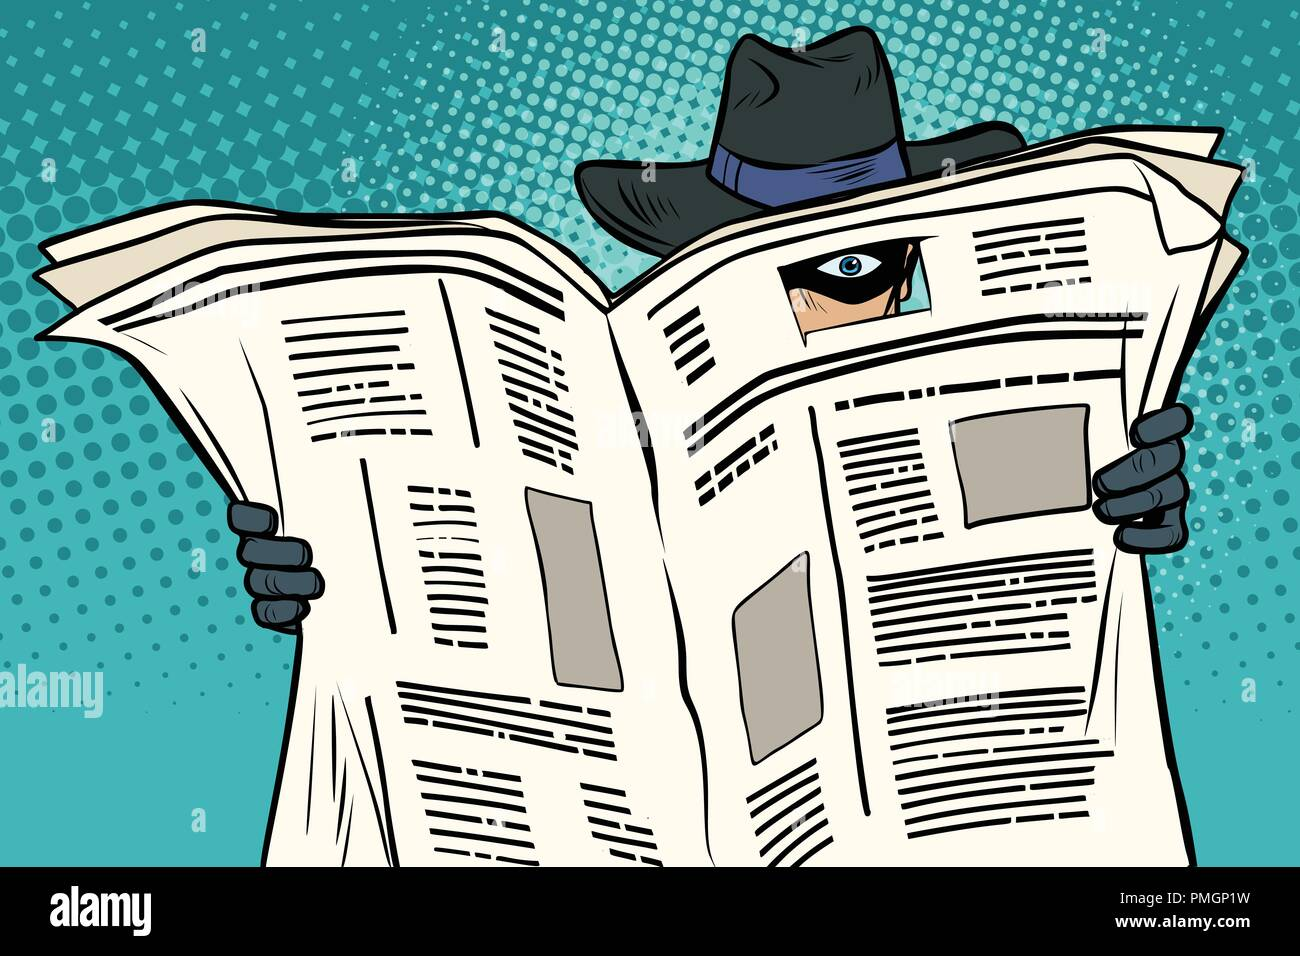 spy watches through the newspaper - Stock Vector